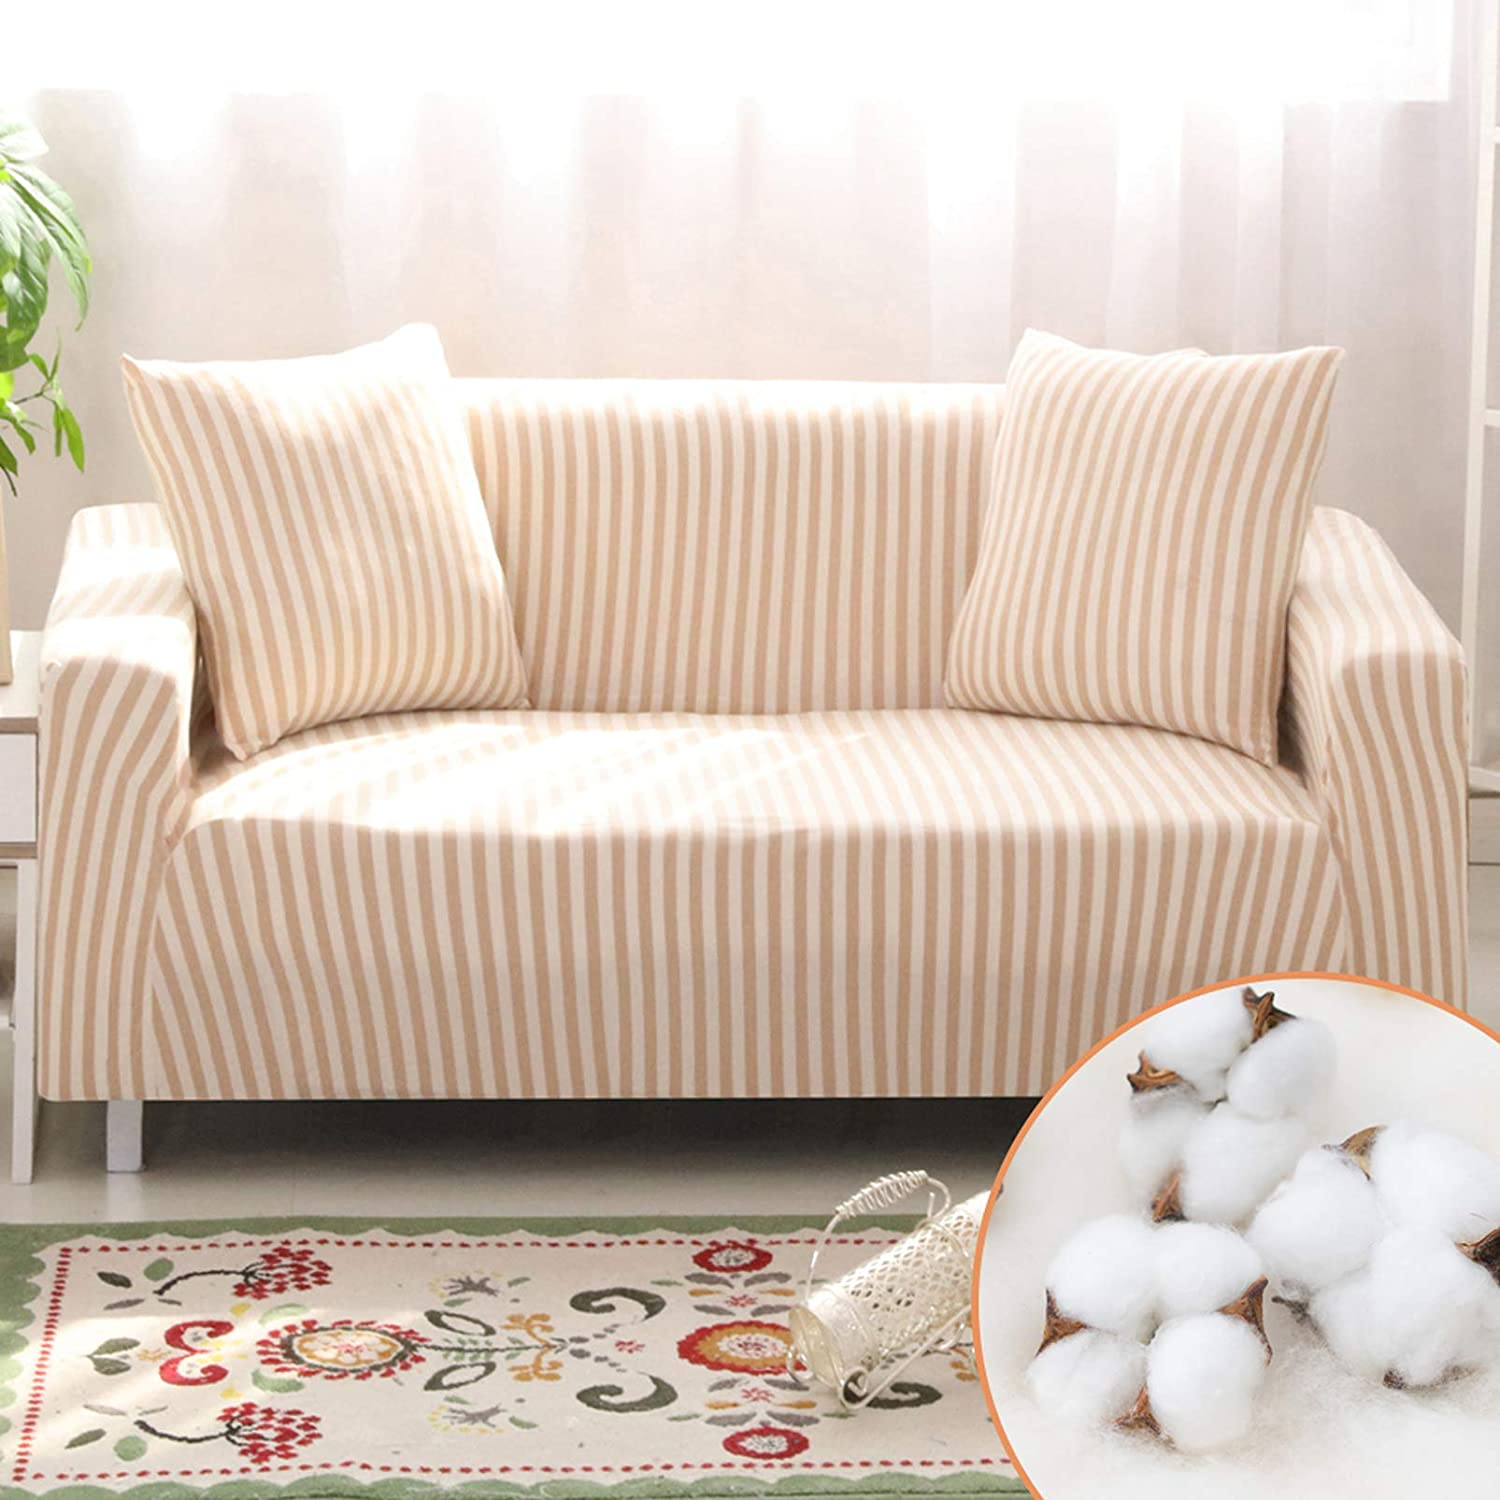 Homcosan Stretch Sofa Slipcovers Cotton Pattern Stripe Sofa Cover with 2 Pillowcases for 3 Cushion Couch Furniture Pet Protector Anti-Slip Stylish Sectional Couch(Mocha, Sofa-3 Seater)